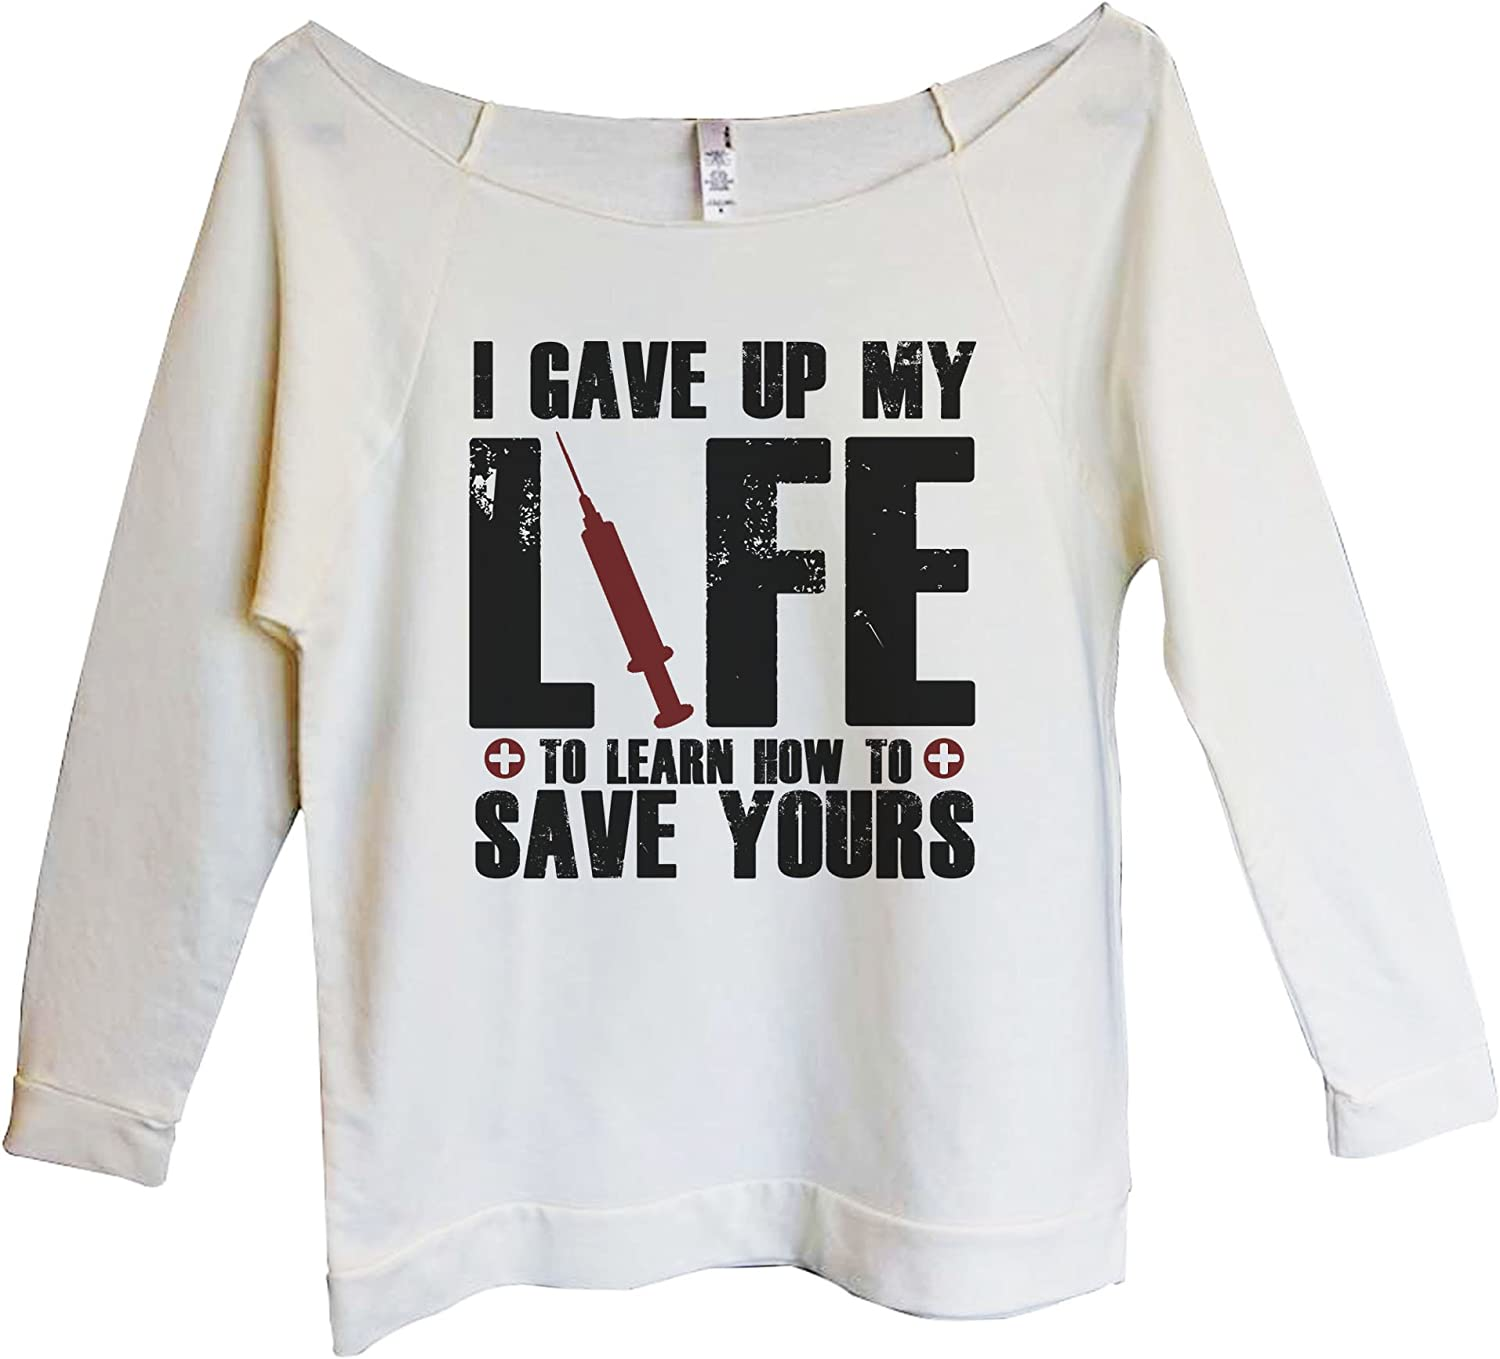 Cute Nursing School Shirts I Gave Up My Life to Learn How to Save Yours